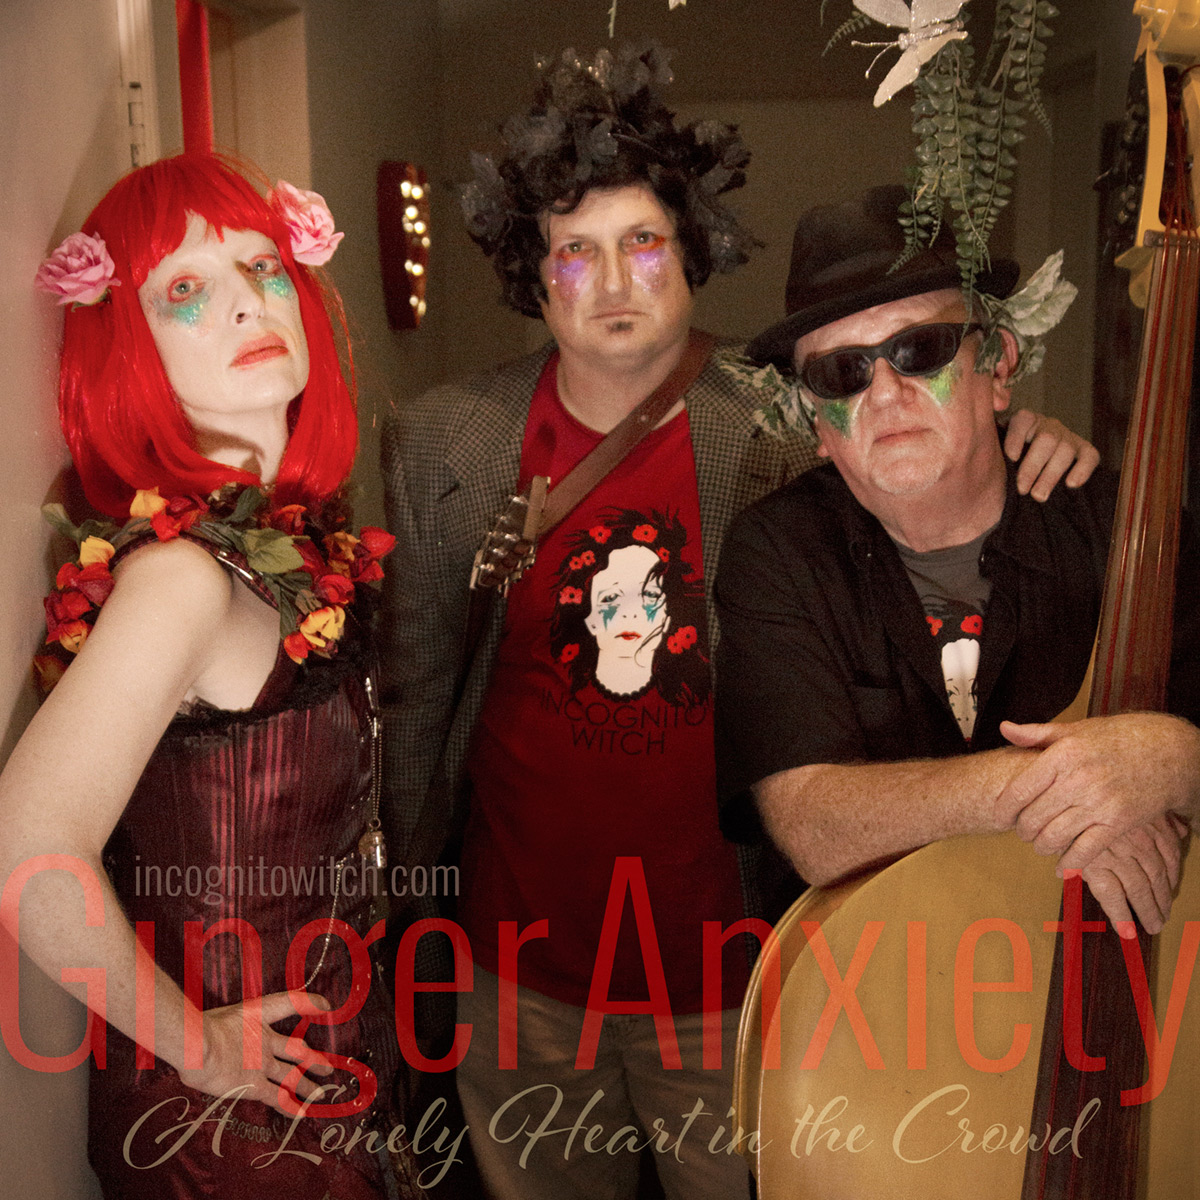 Awareness Film Festival - Ginger Anxiety Band